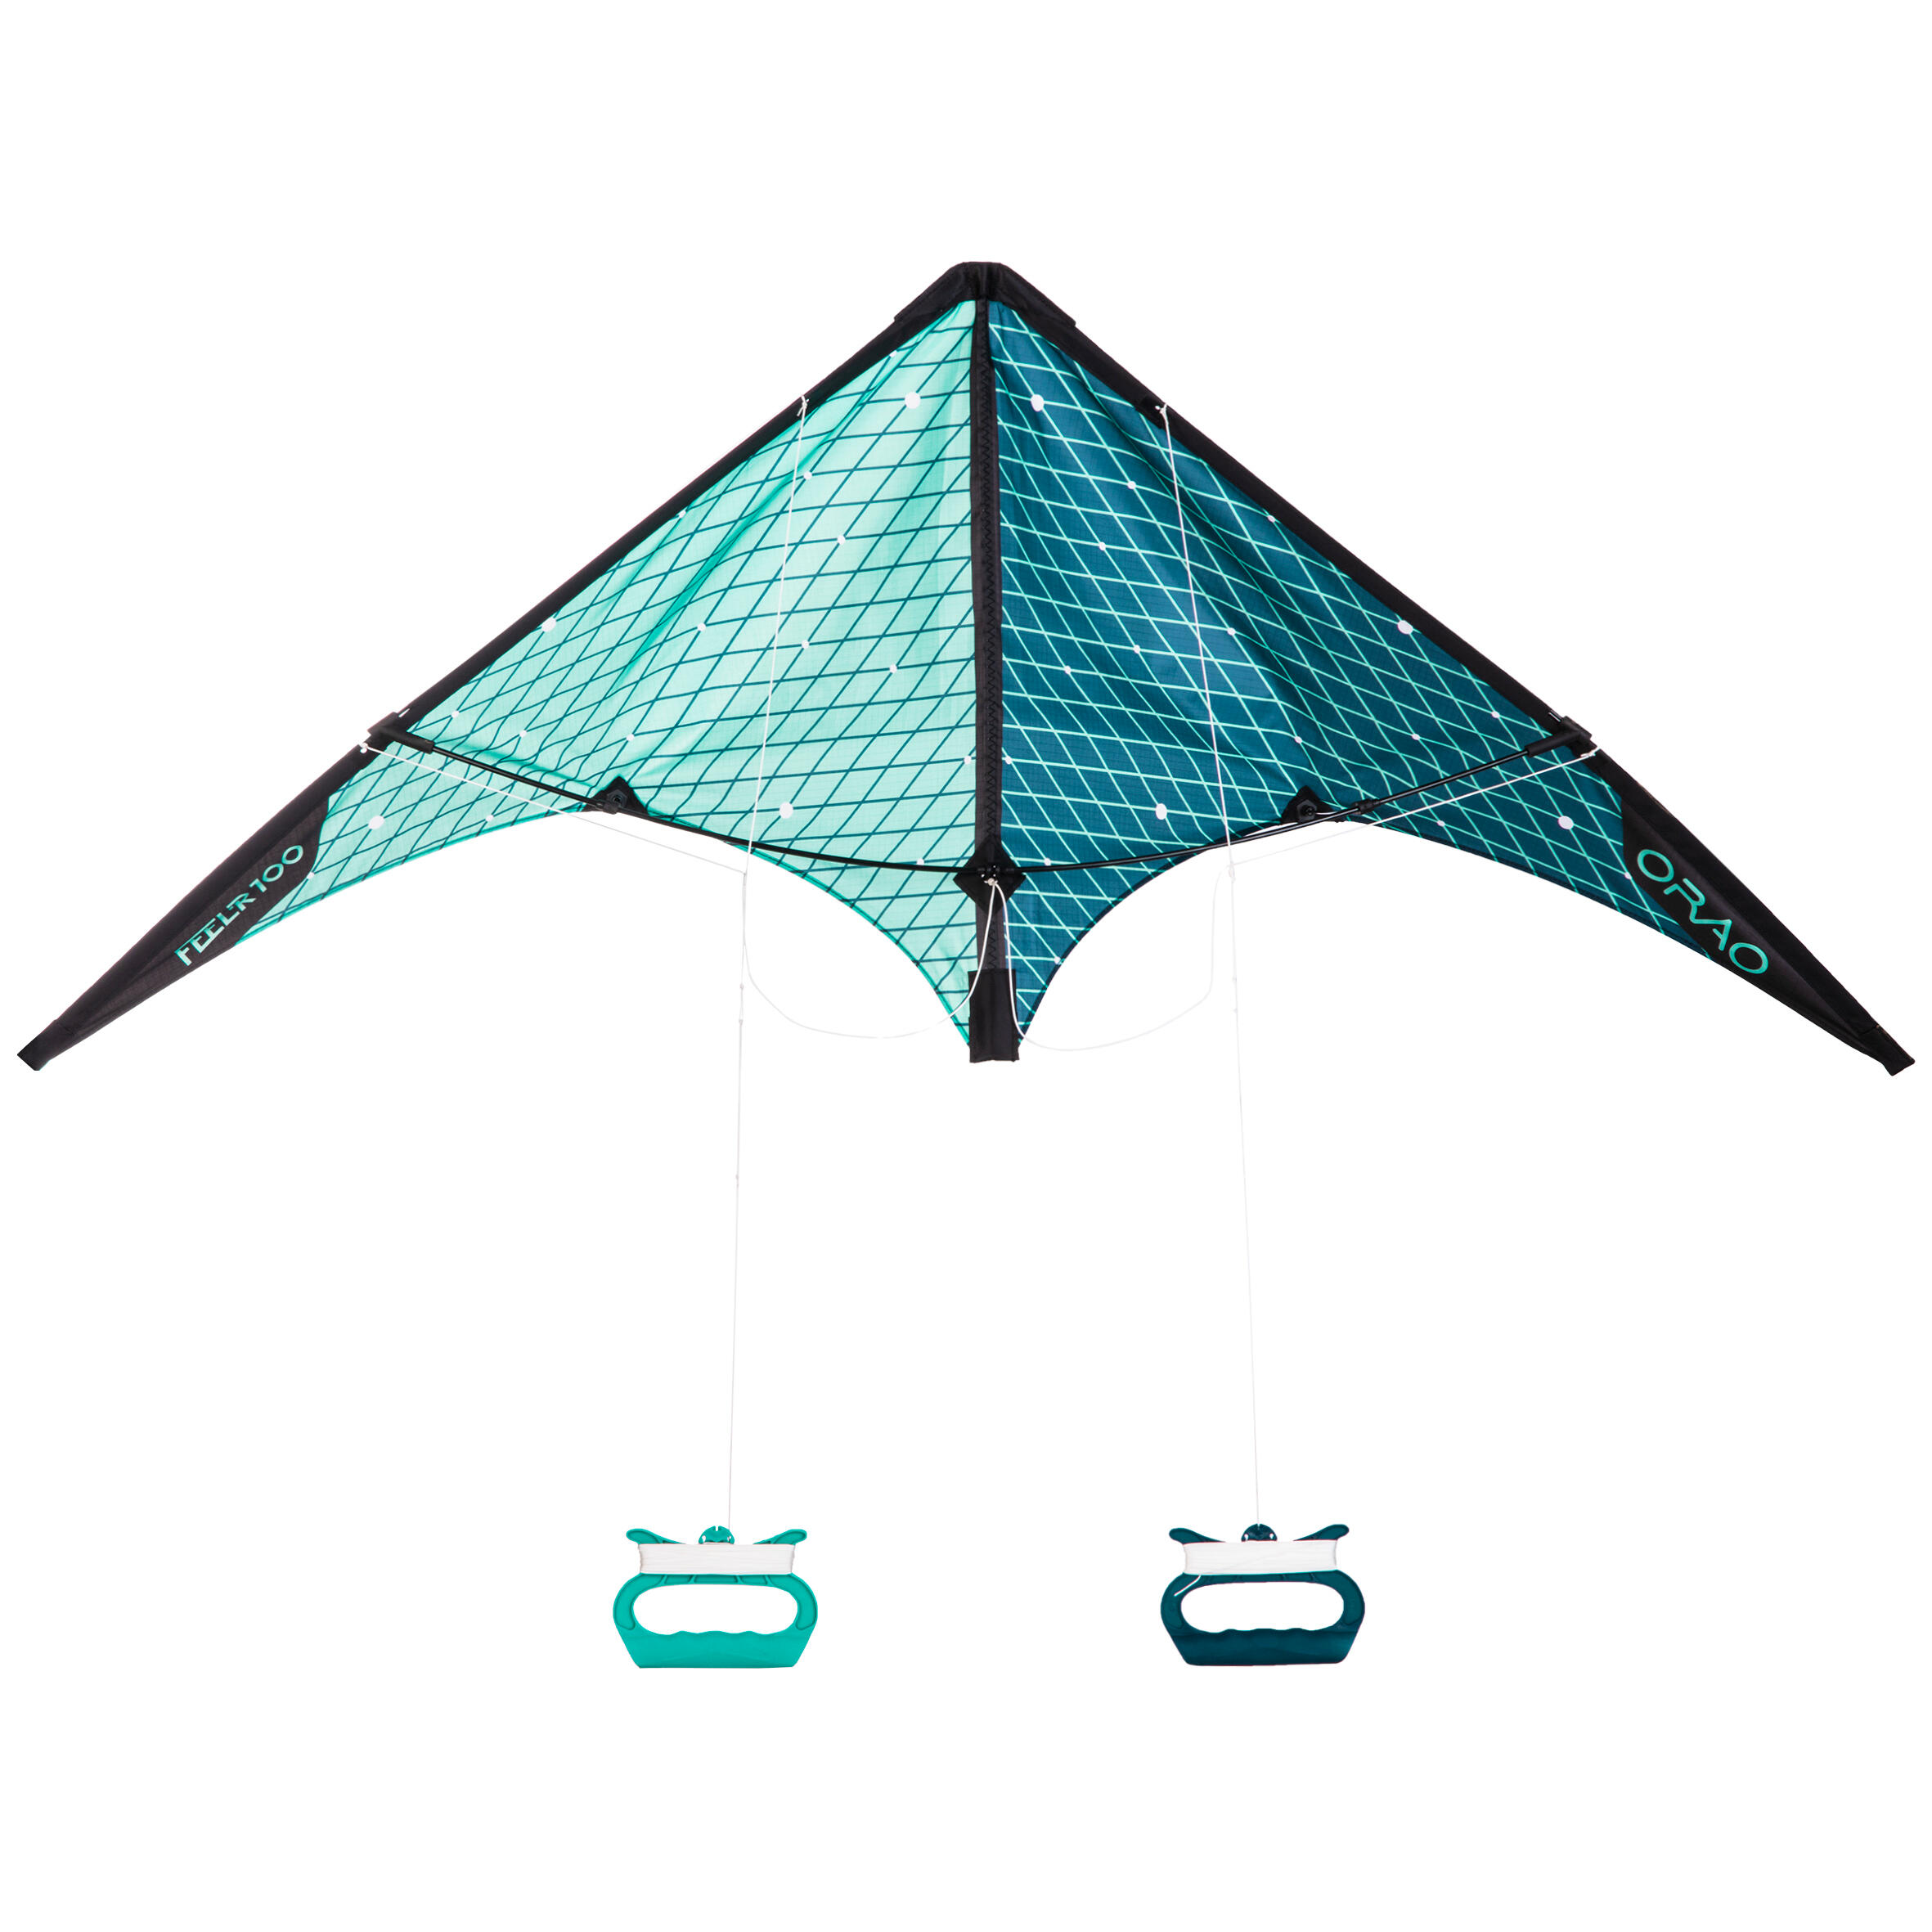 Feel'R 100 Stunt Kite